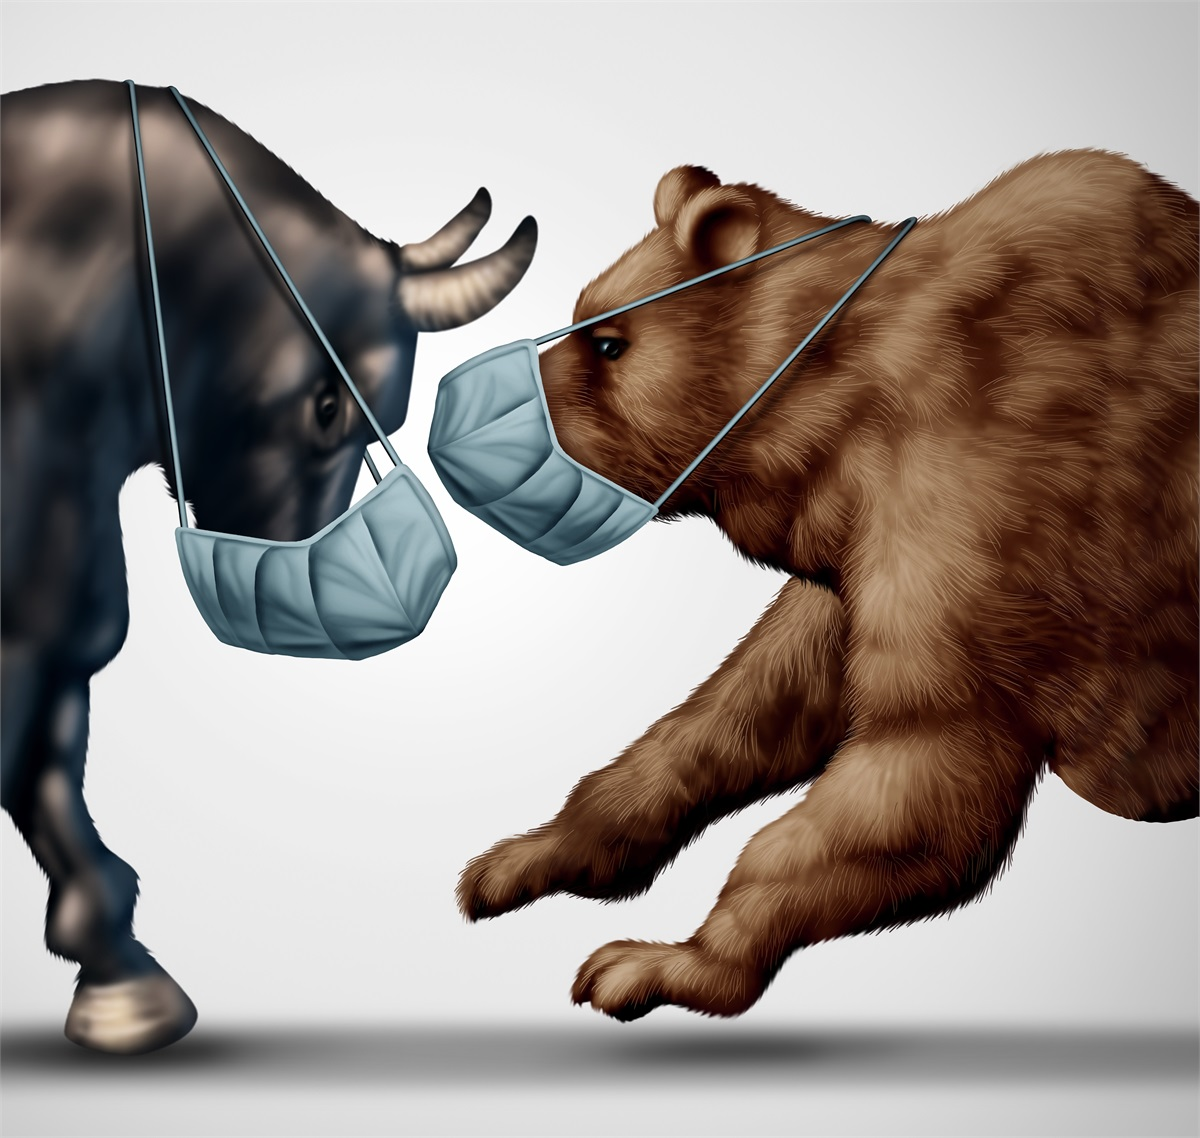 March 2020 Update: War In The Market Part 3 - Bear Market = Opportunity